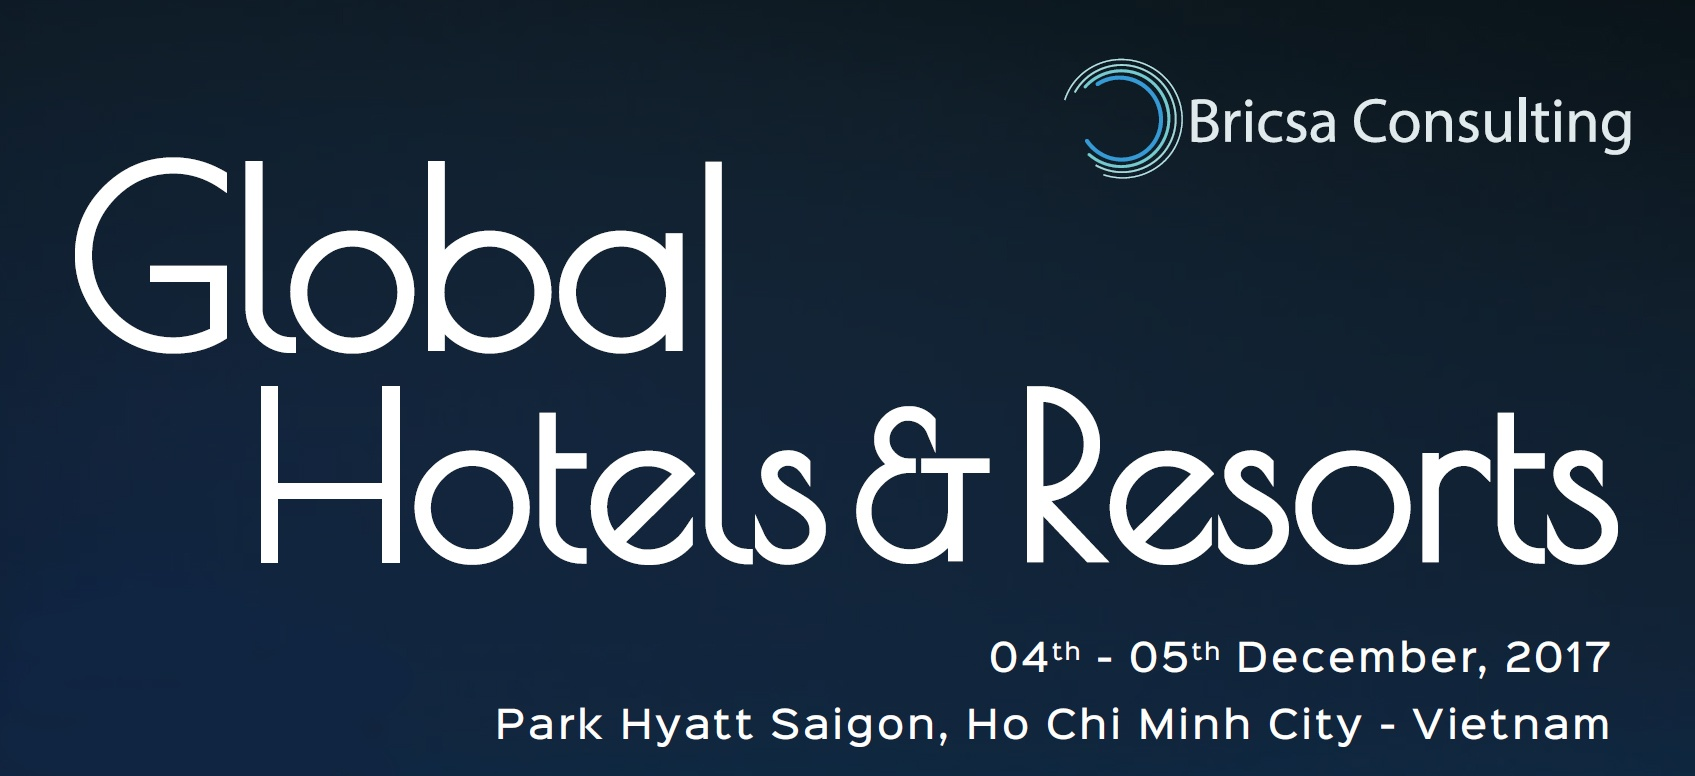 Global Hotels & Resorts Conference 2017